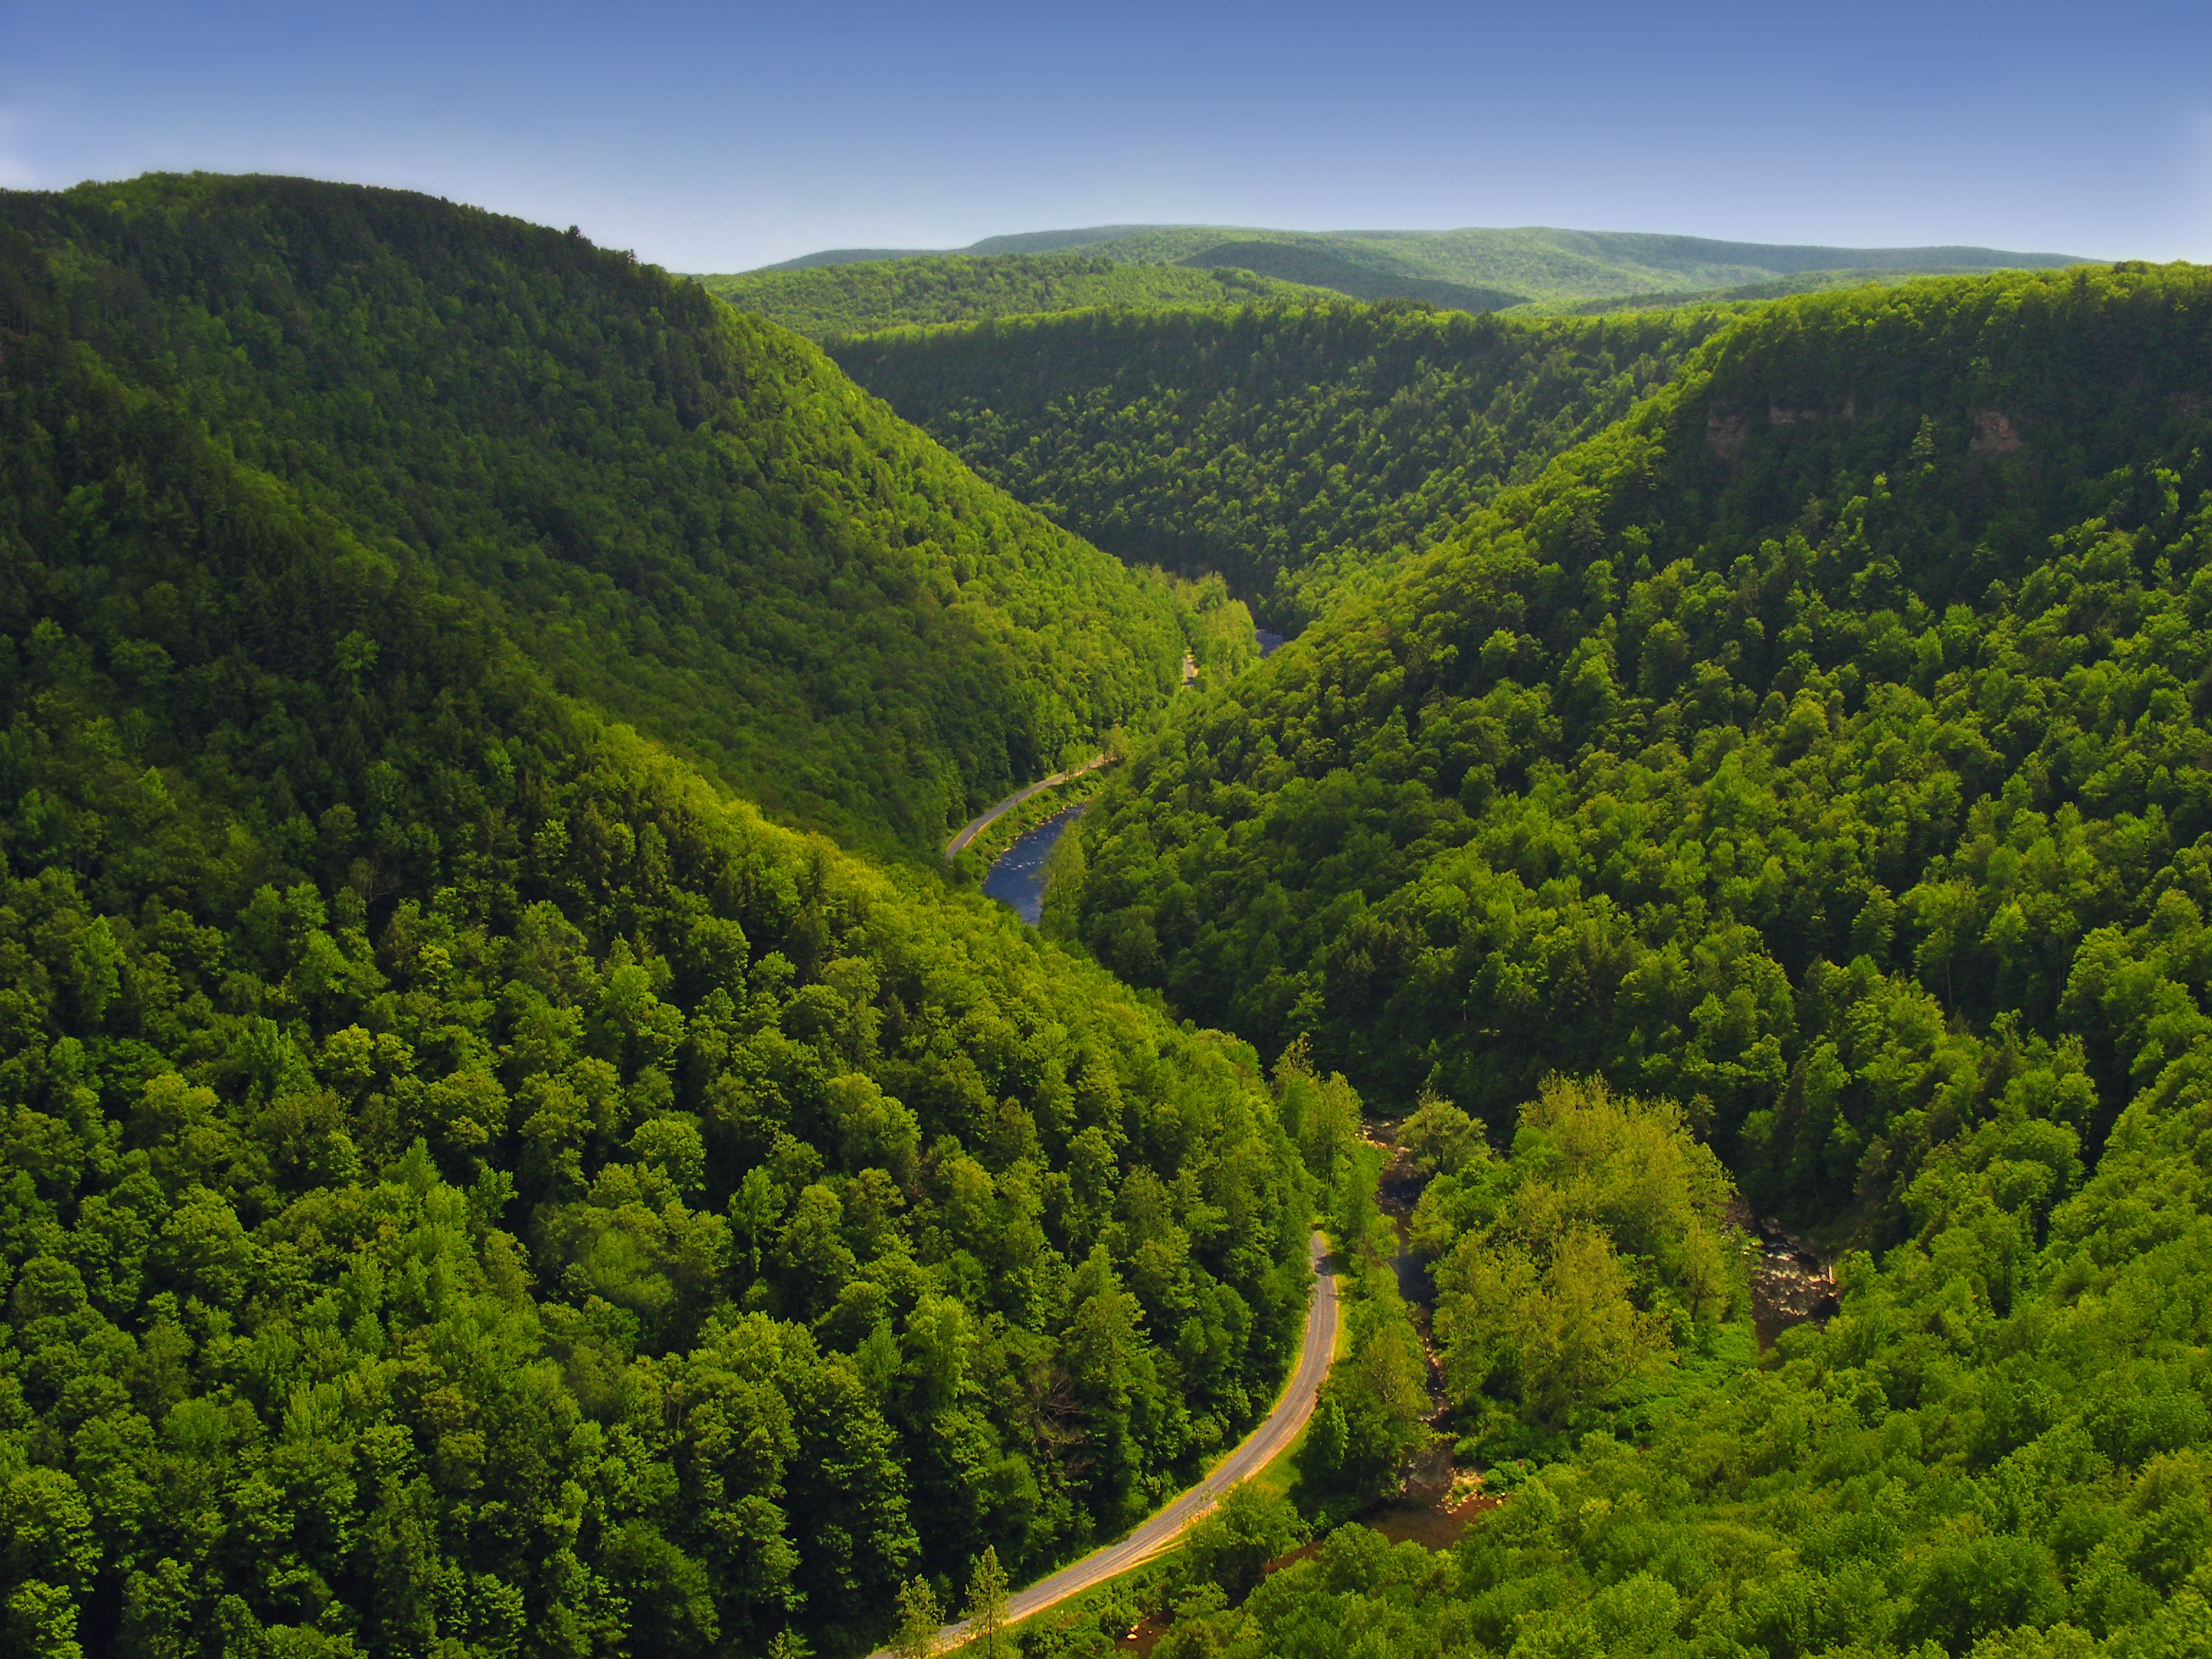 map of the state maine with File Pine Creek Gorge  Tioga County  As Seen From The West Rim Trail on Vermont as well Appa together with Fsa Approved Borrow Training Courses as well Mt Washington 014 as well Why You Should Launch Your Business In Portland Maine.